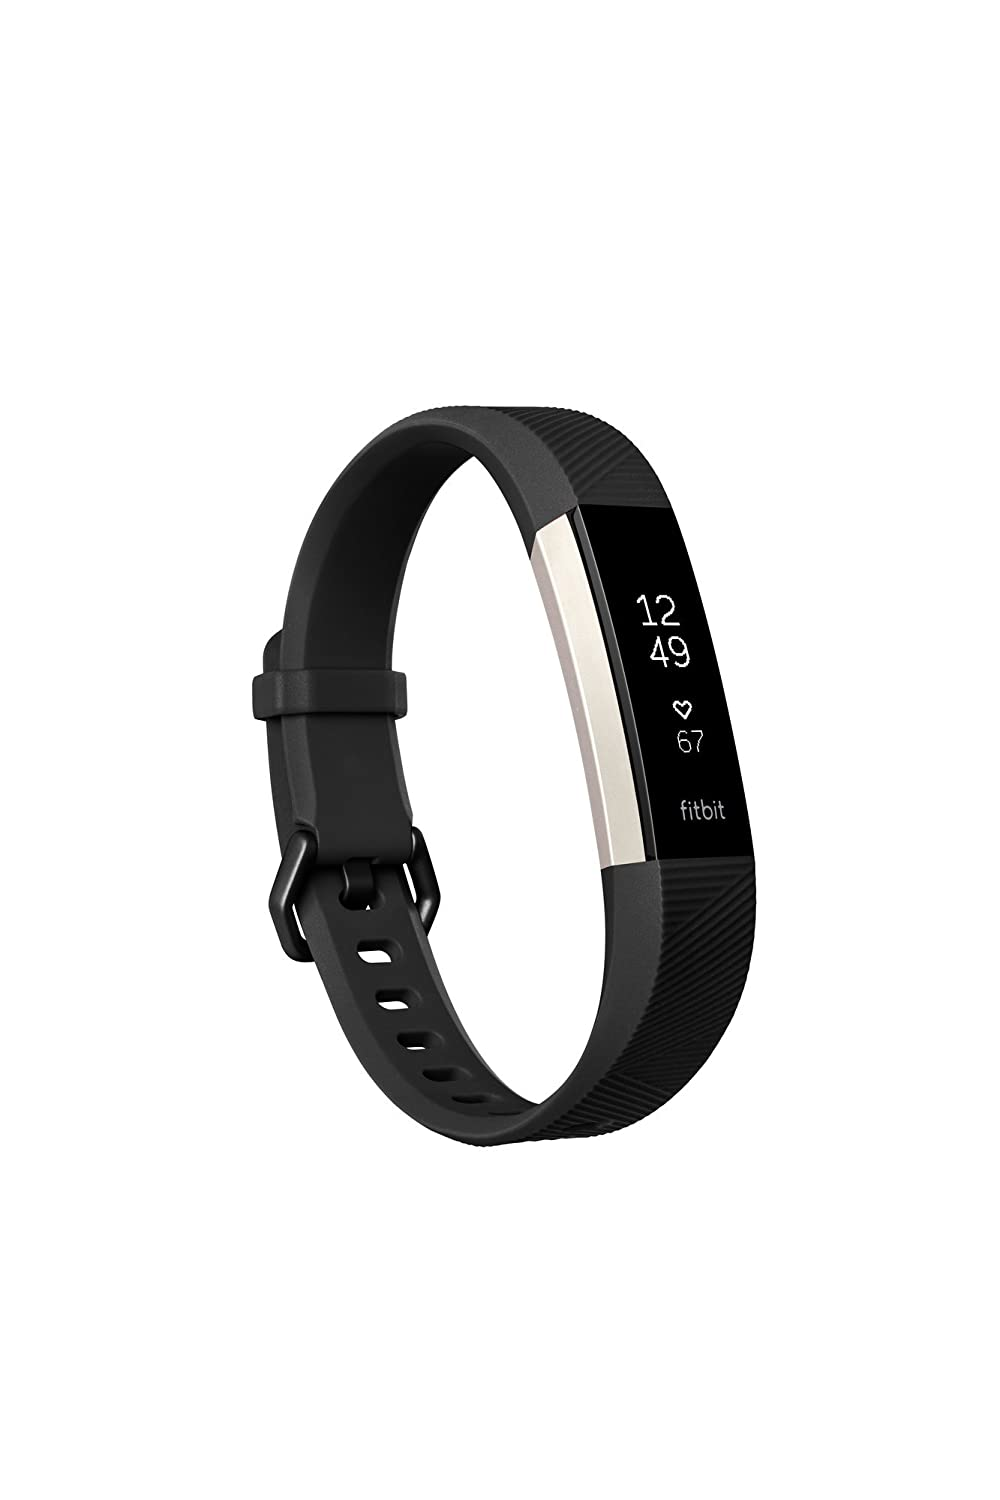 Fitbit Alta Hr Band- Black, Small